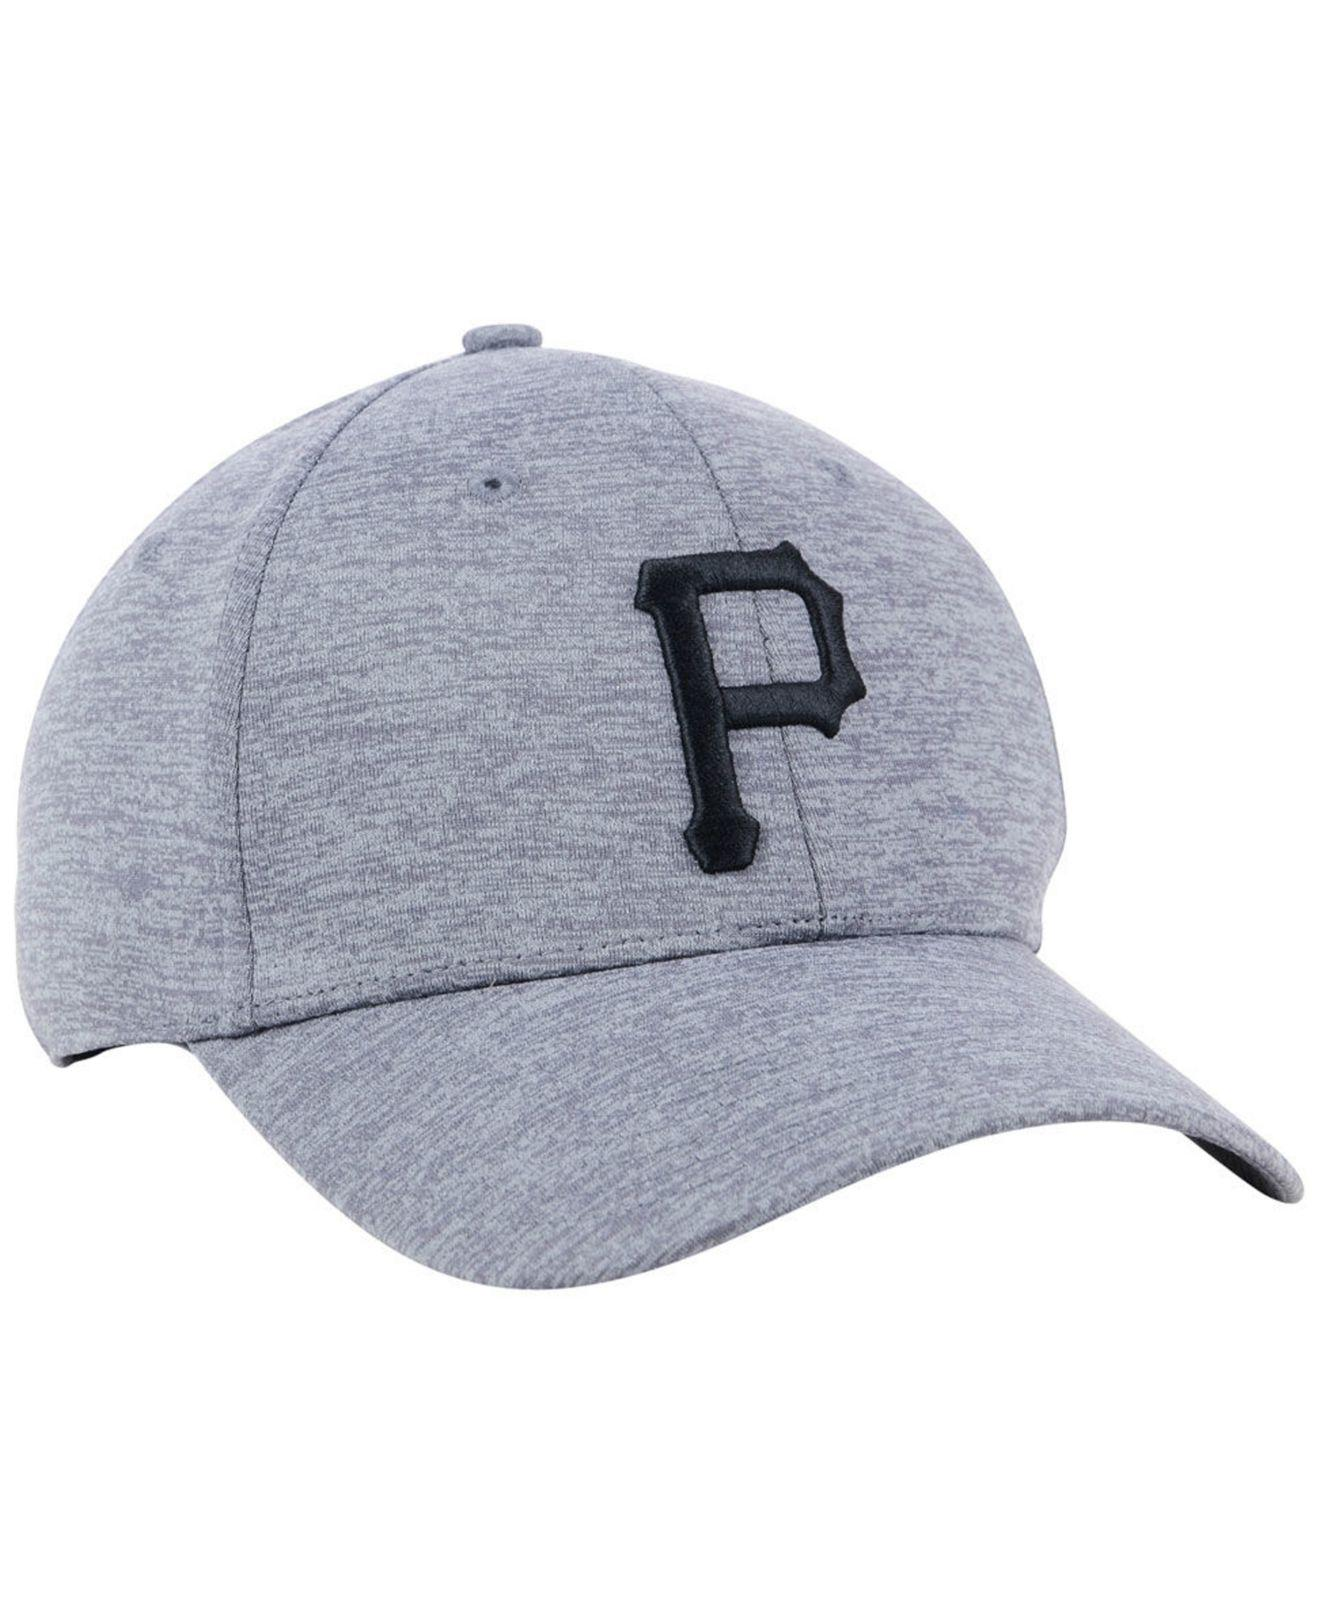 3c8218d6dc5 ... best under armour gray pittsburgh pirates twist closer cap for men  lyst. view fullscreen 4f45c